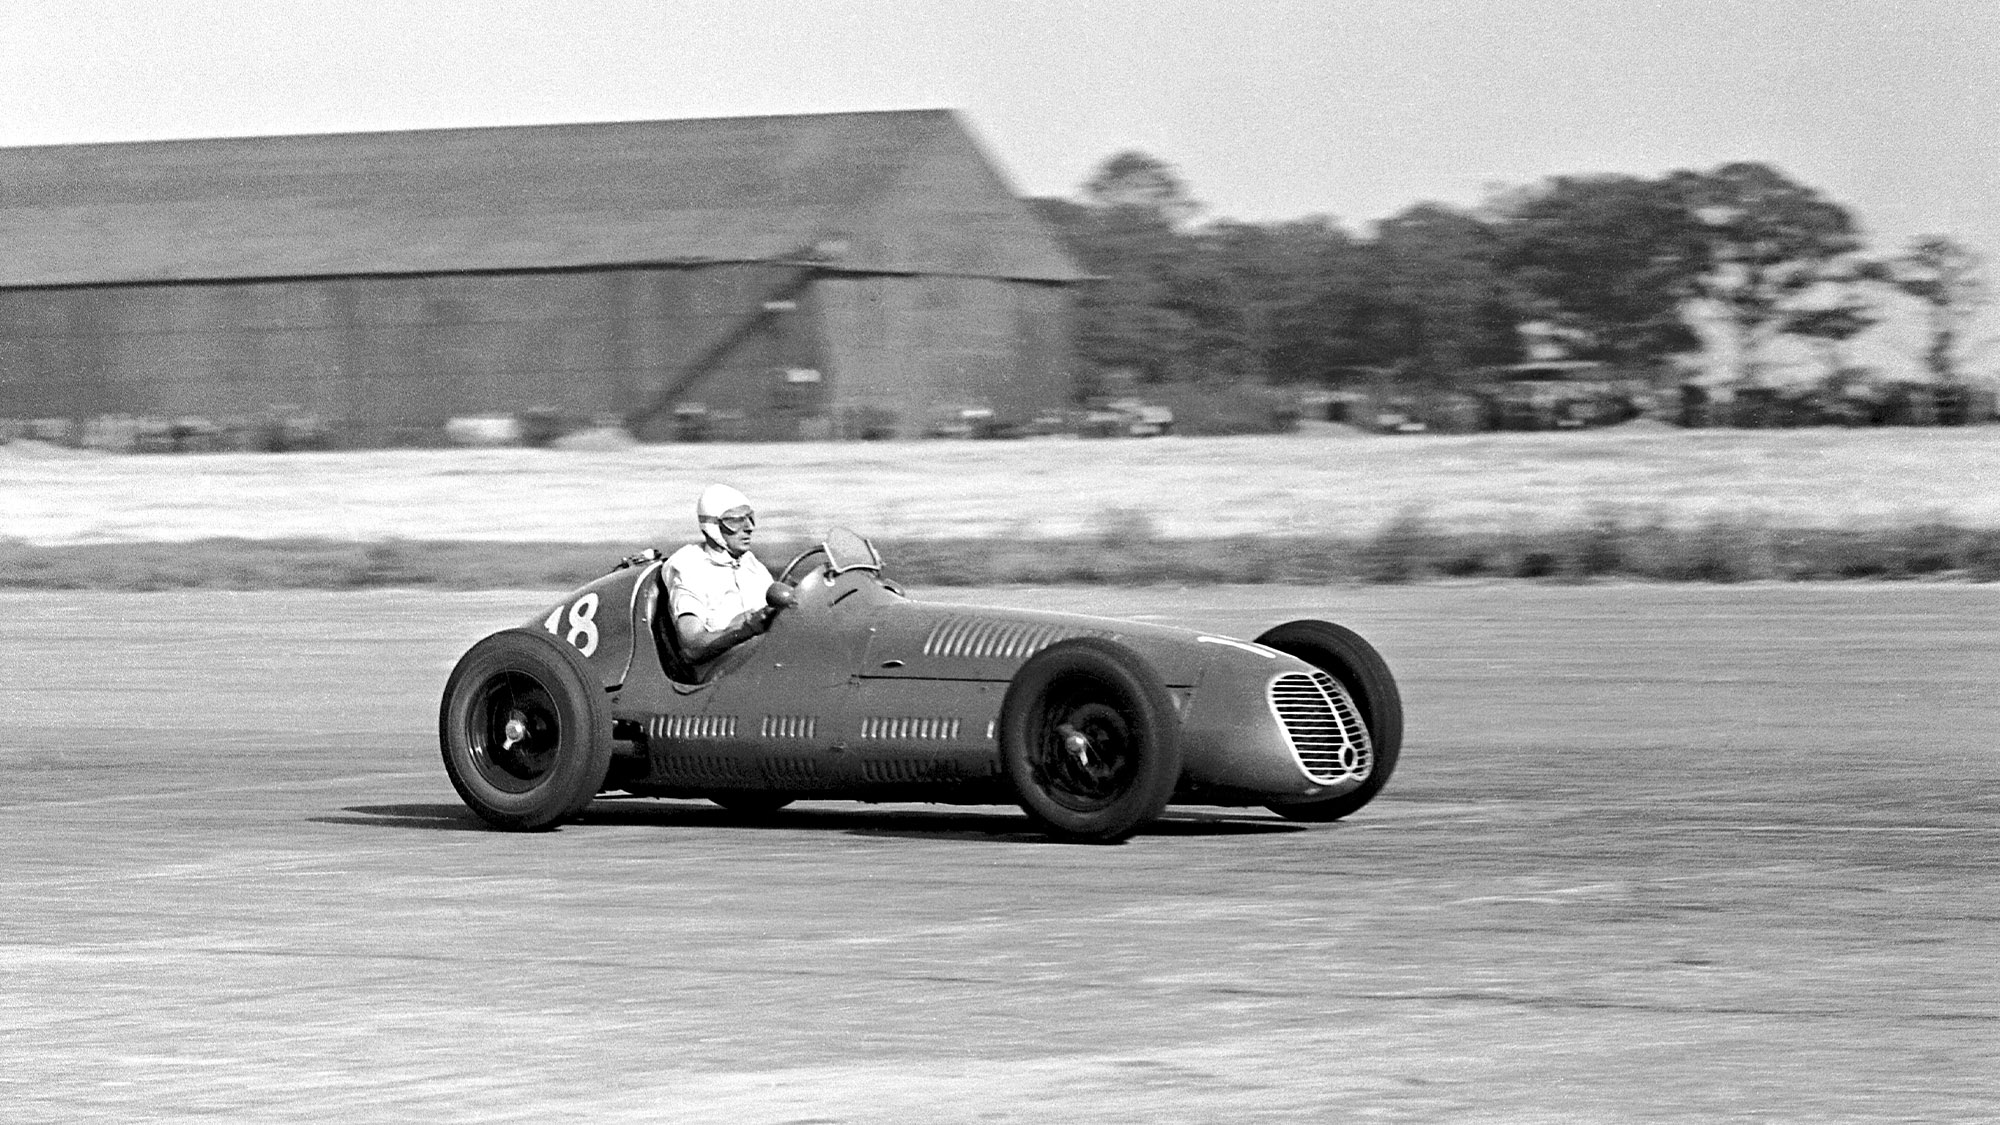 Luigi Villoresi on his way to victory in the 1948 British Grand Prix at Silverstone